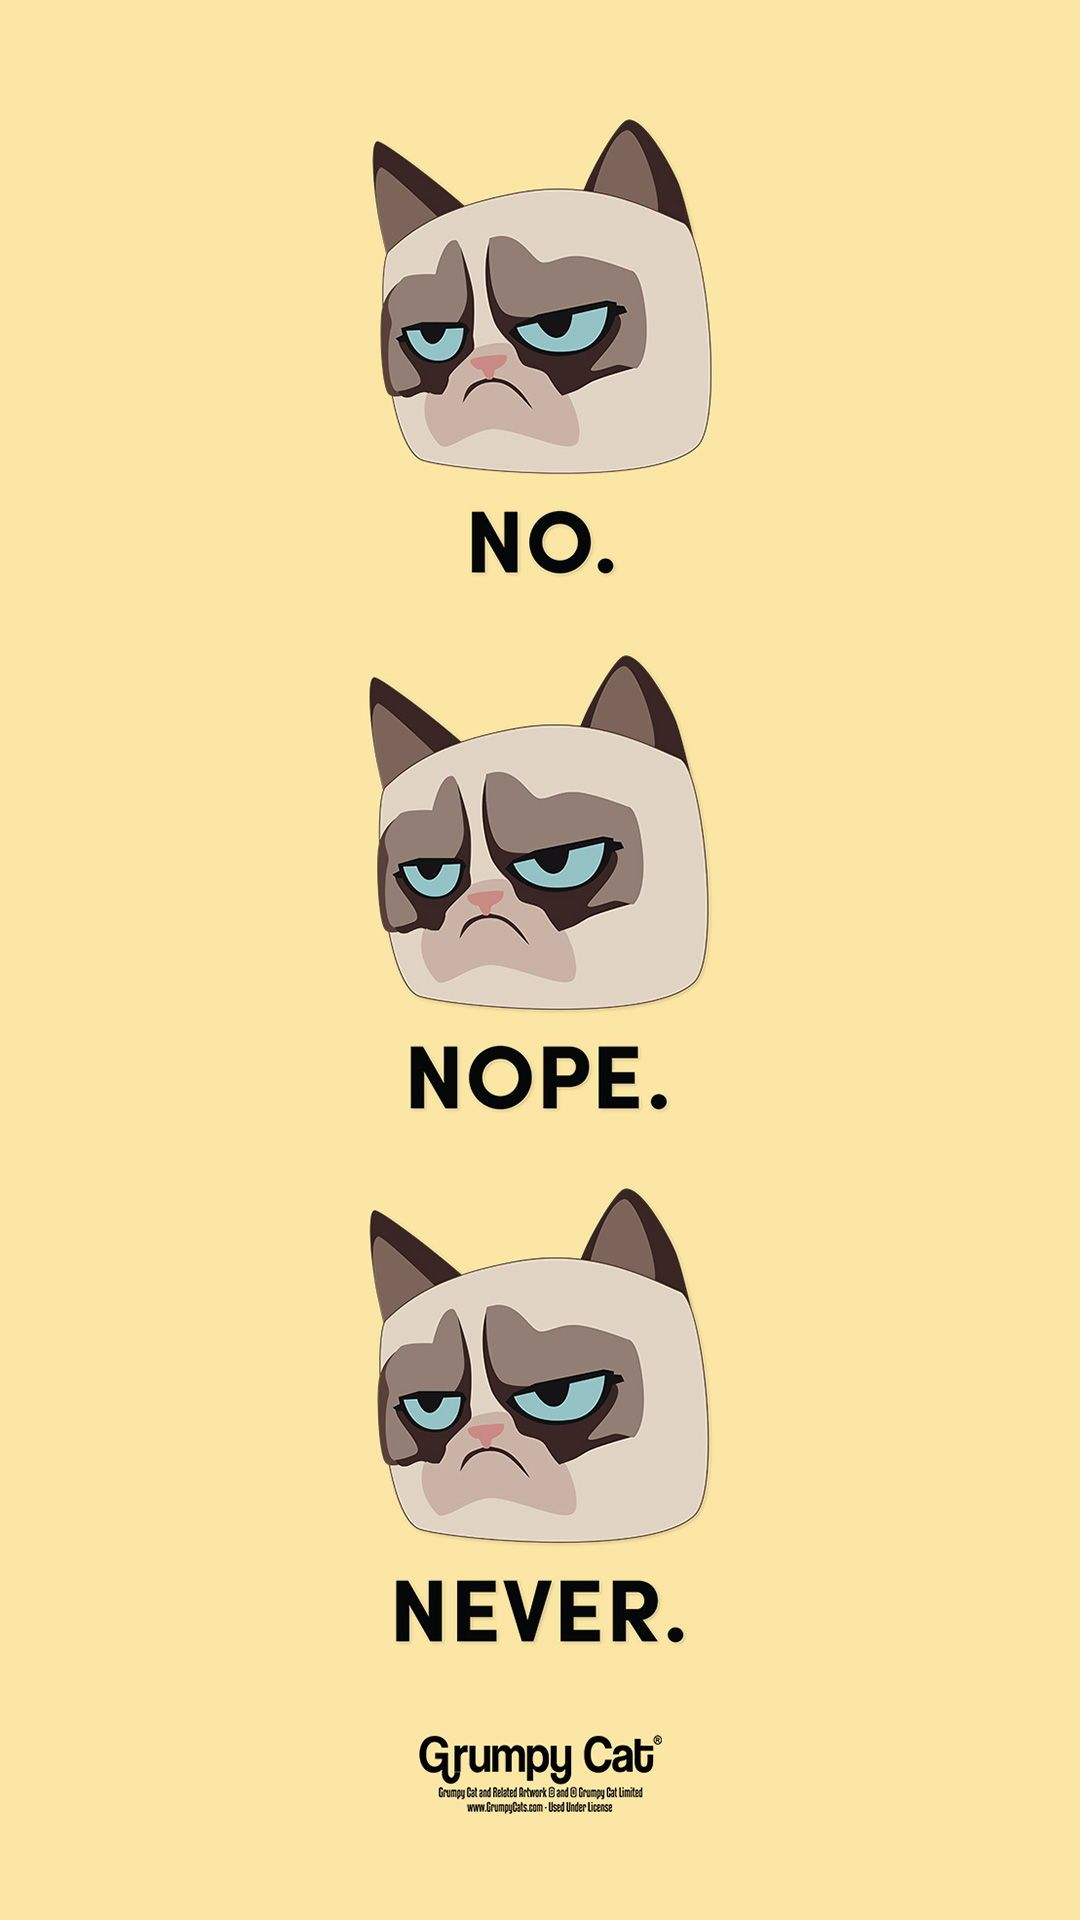 No Never Nope By Grumpy Cat Would Be A Fun Wallpaper For Your